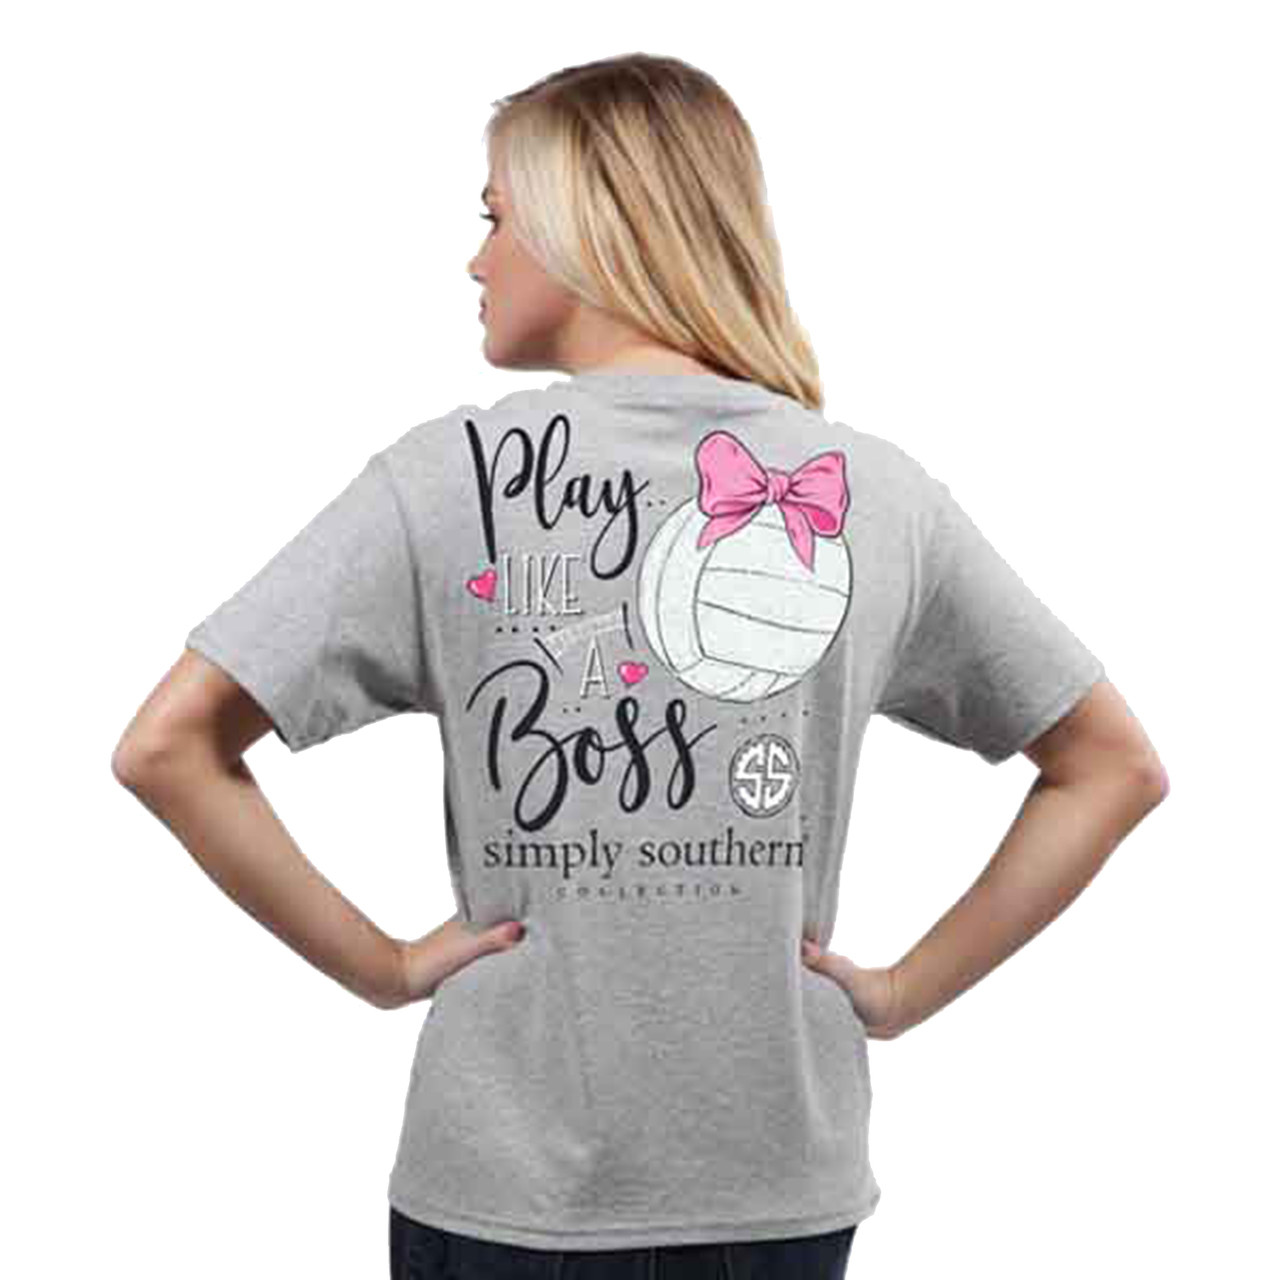 e6dd28b48a87d1 Simply Southern Youth Preppy Volleyball Like a Boss Short Sleeve - Trenz  Shirt Company